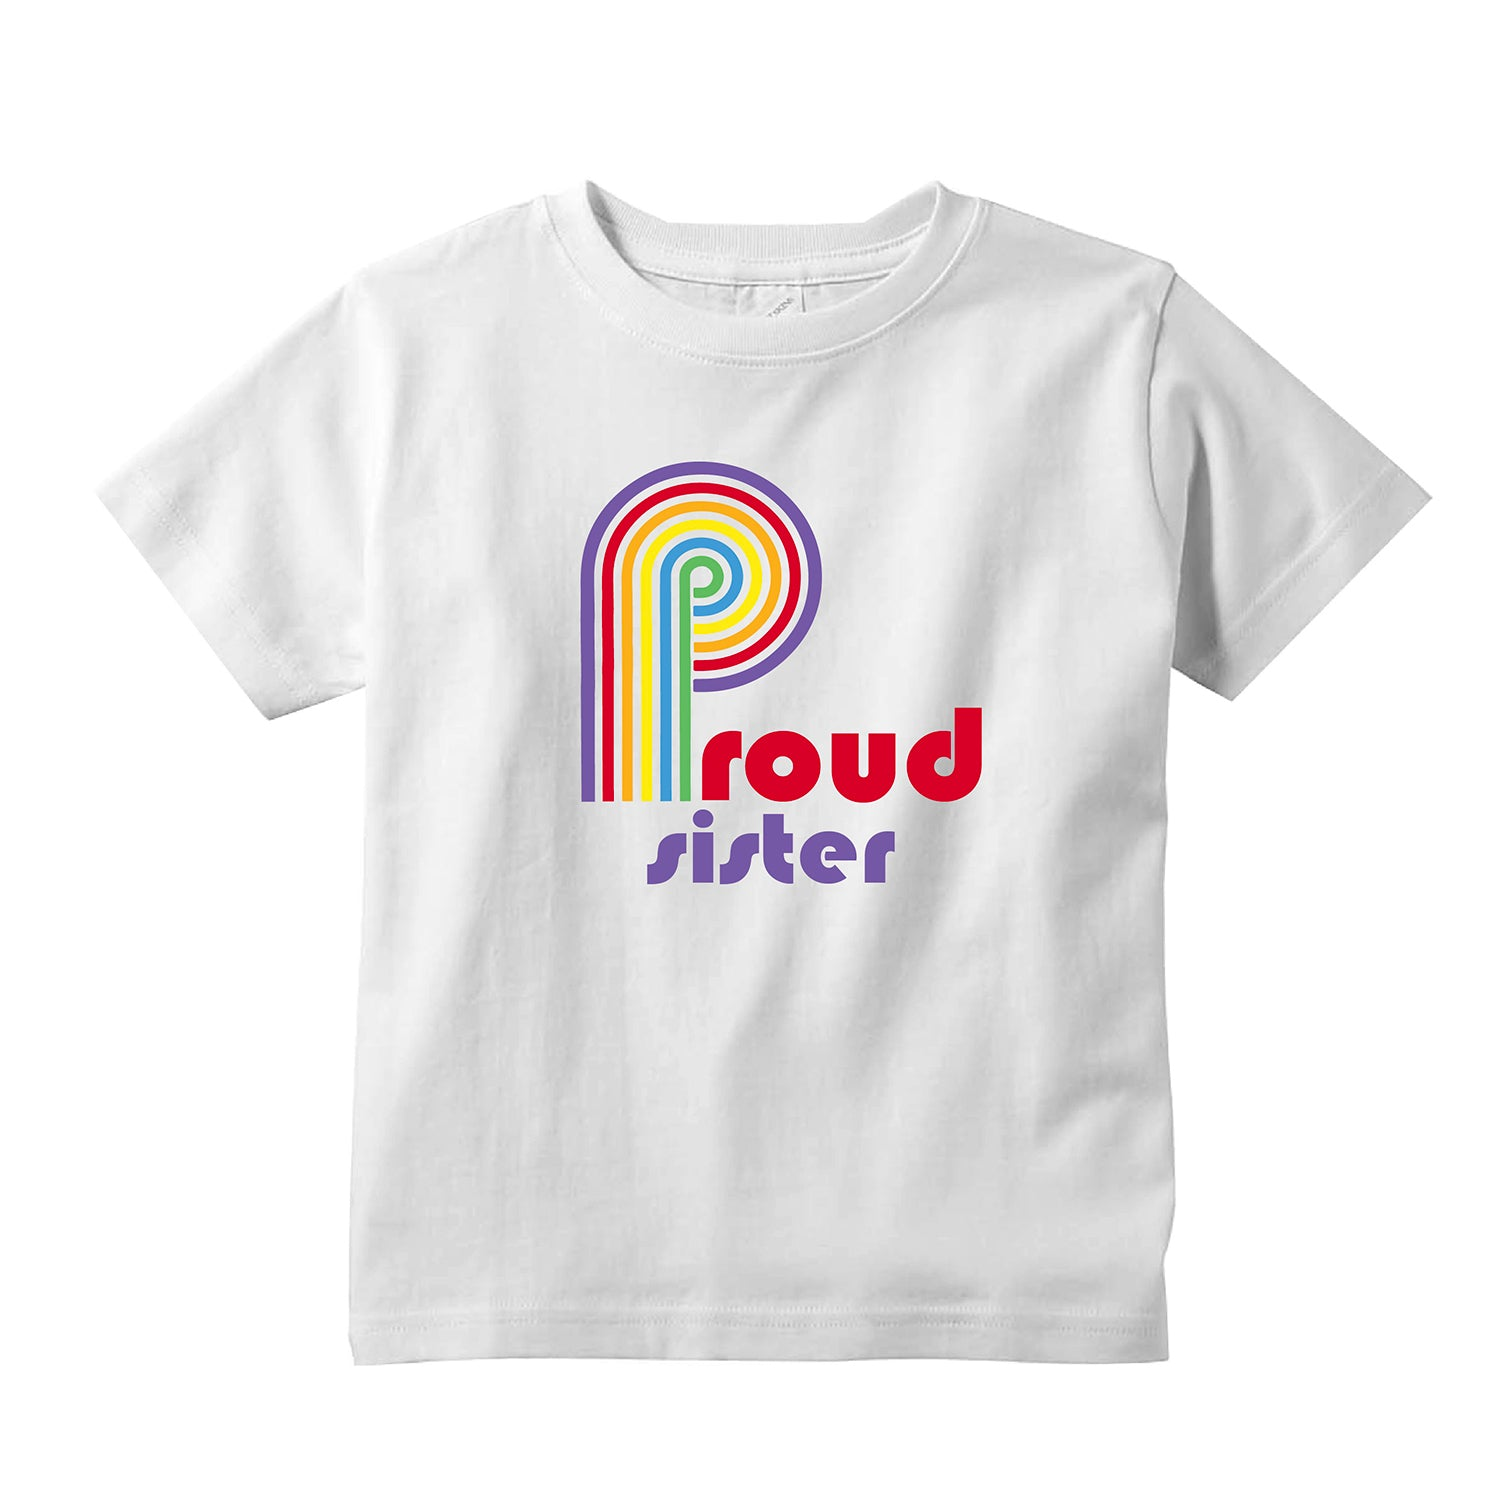 Pride Sister Toddler T-Shirt  + FREE Love is Love Pride Face Maskt